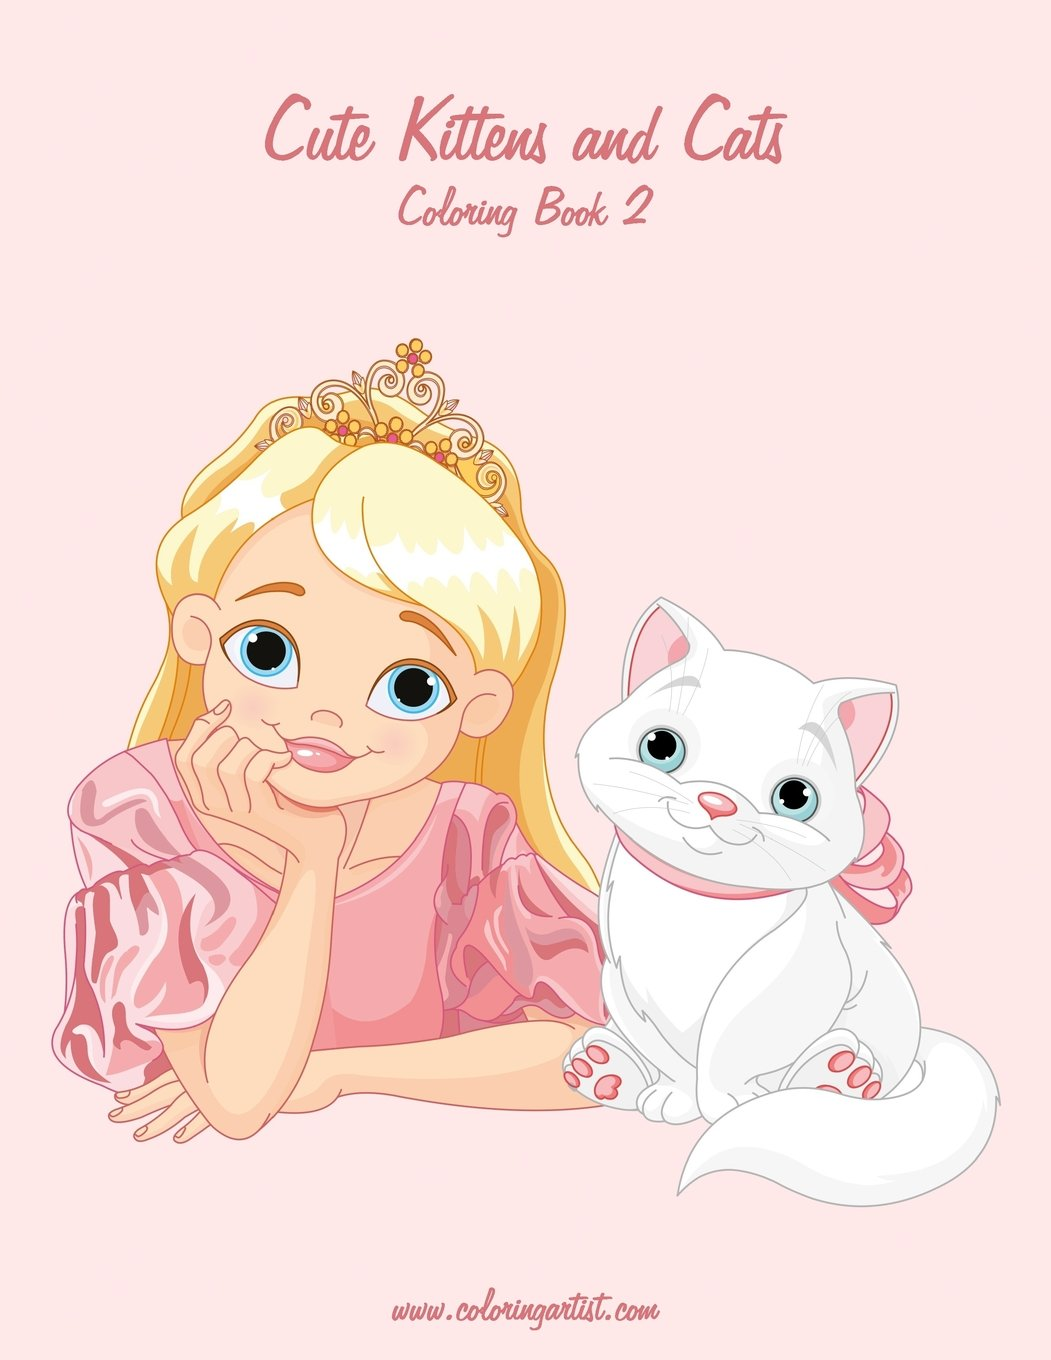 Cute Kittens and Cats Coloring Book 2 (Volume 2) PDF